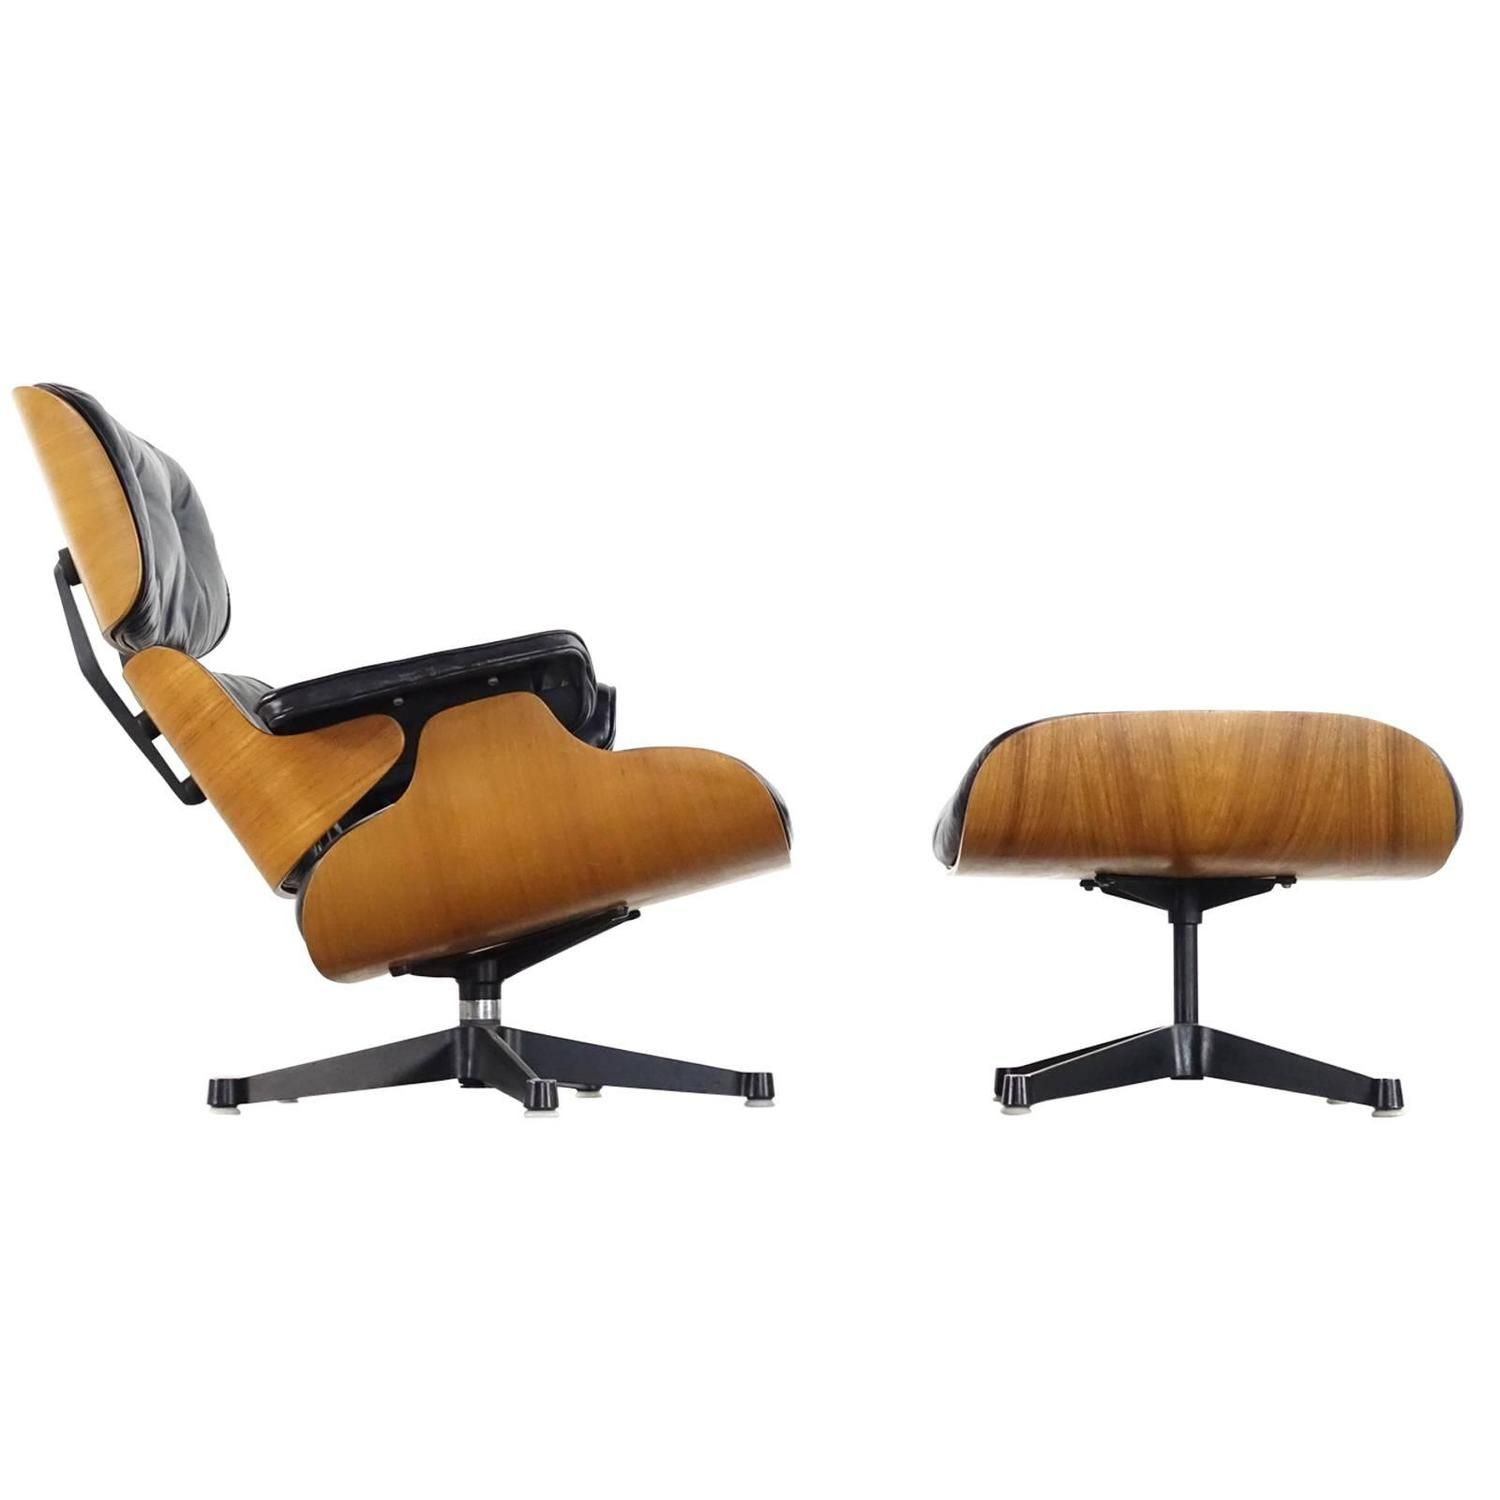 Very Early Charles Ray Eames Lounge Chair From Contura 1957 1965 Eames Lounge Chair Lounge Chair Eames